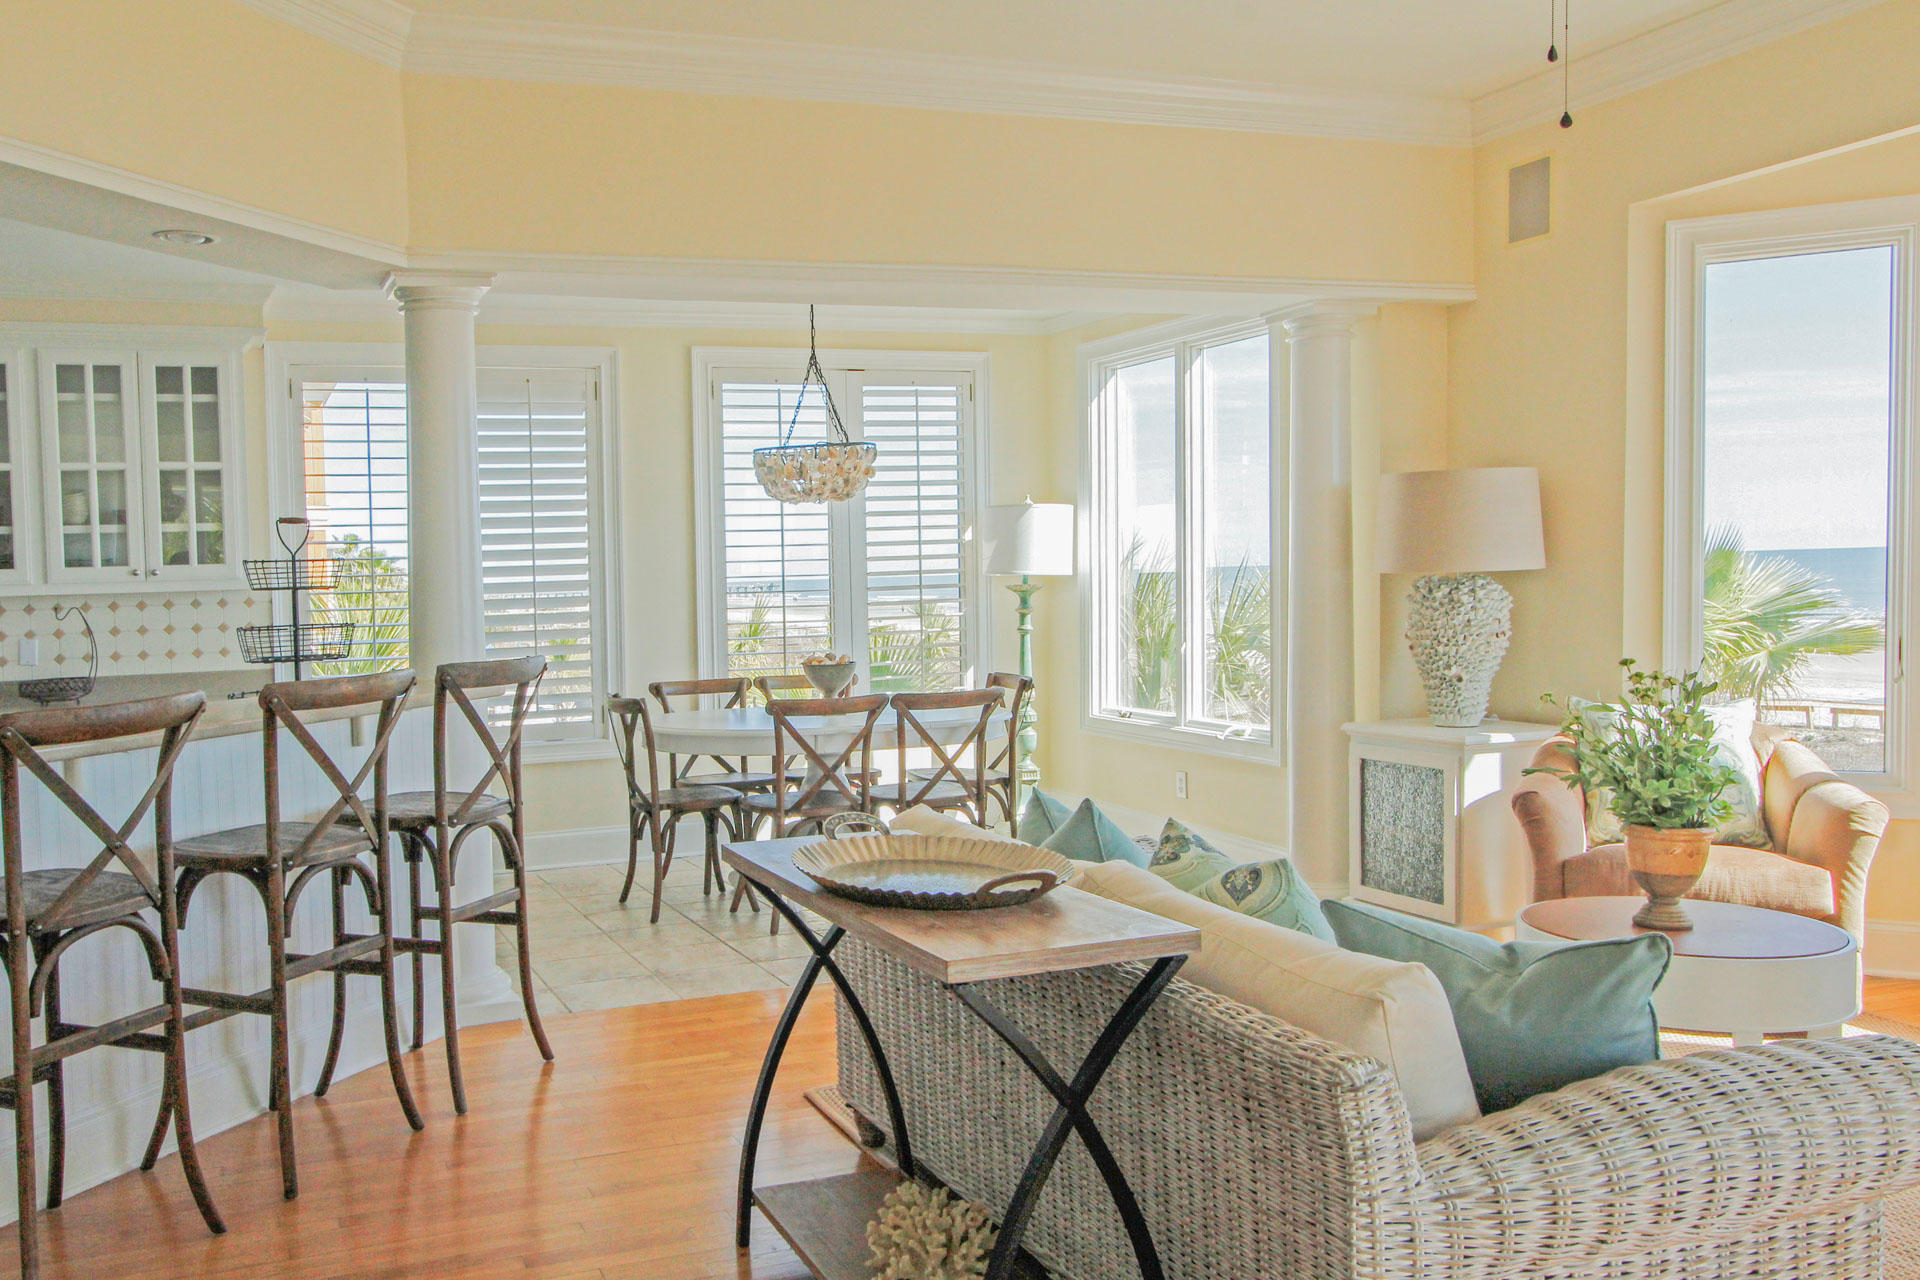 Isle of Palms Homes For Sale - 810 Ocean, Isle of Palms, SC - 16